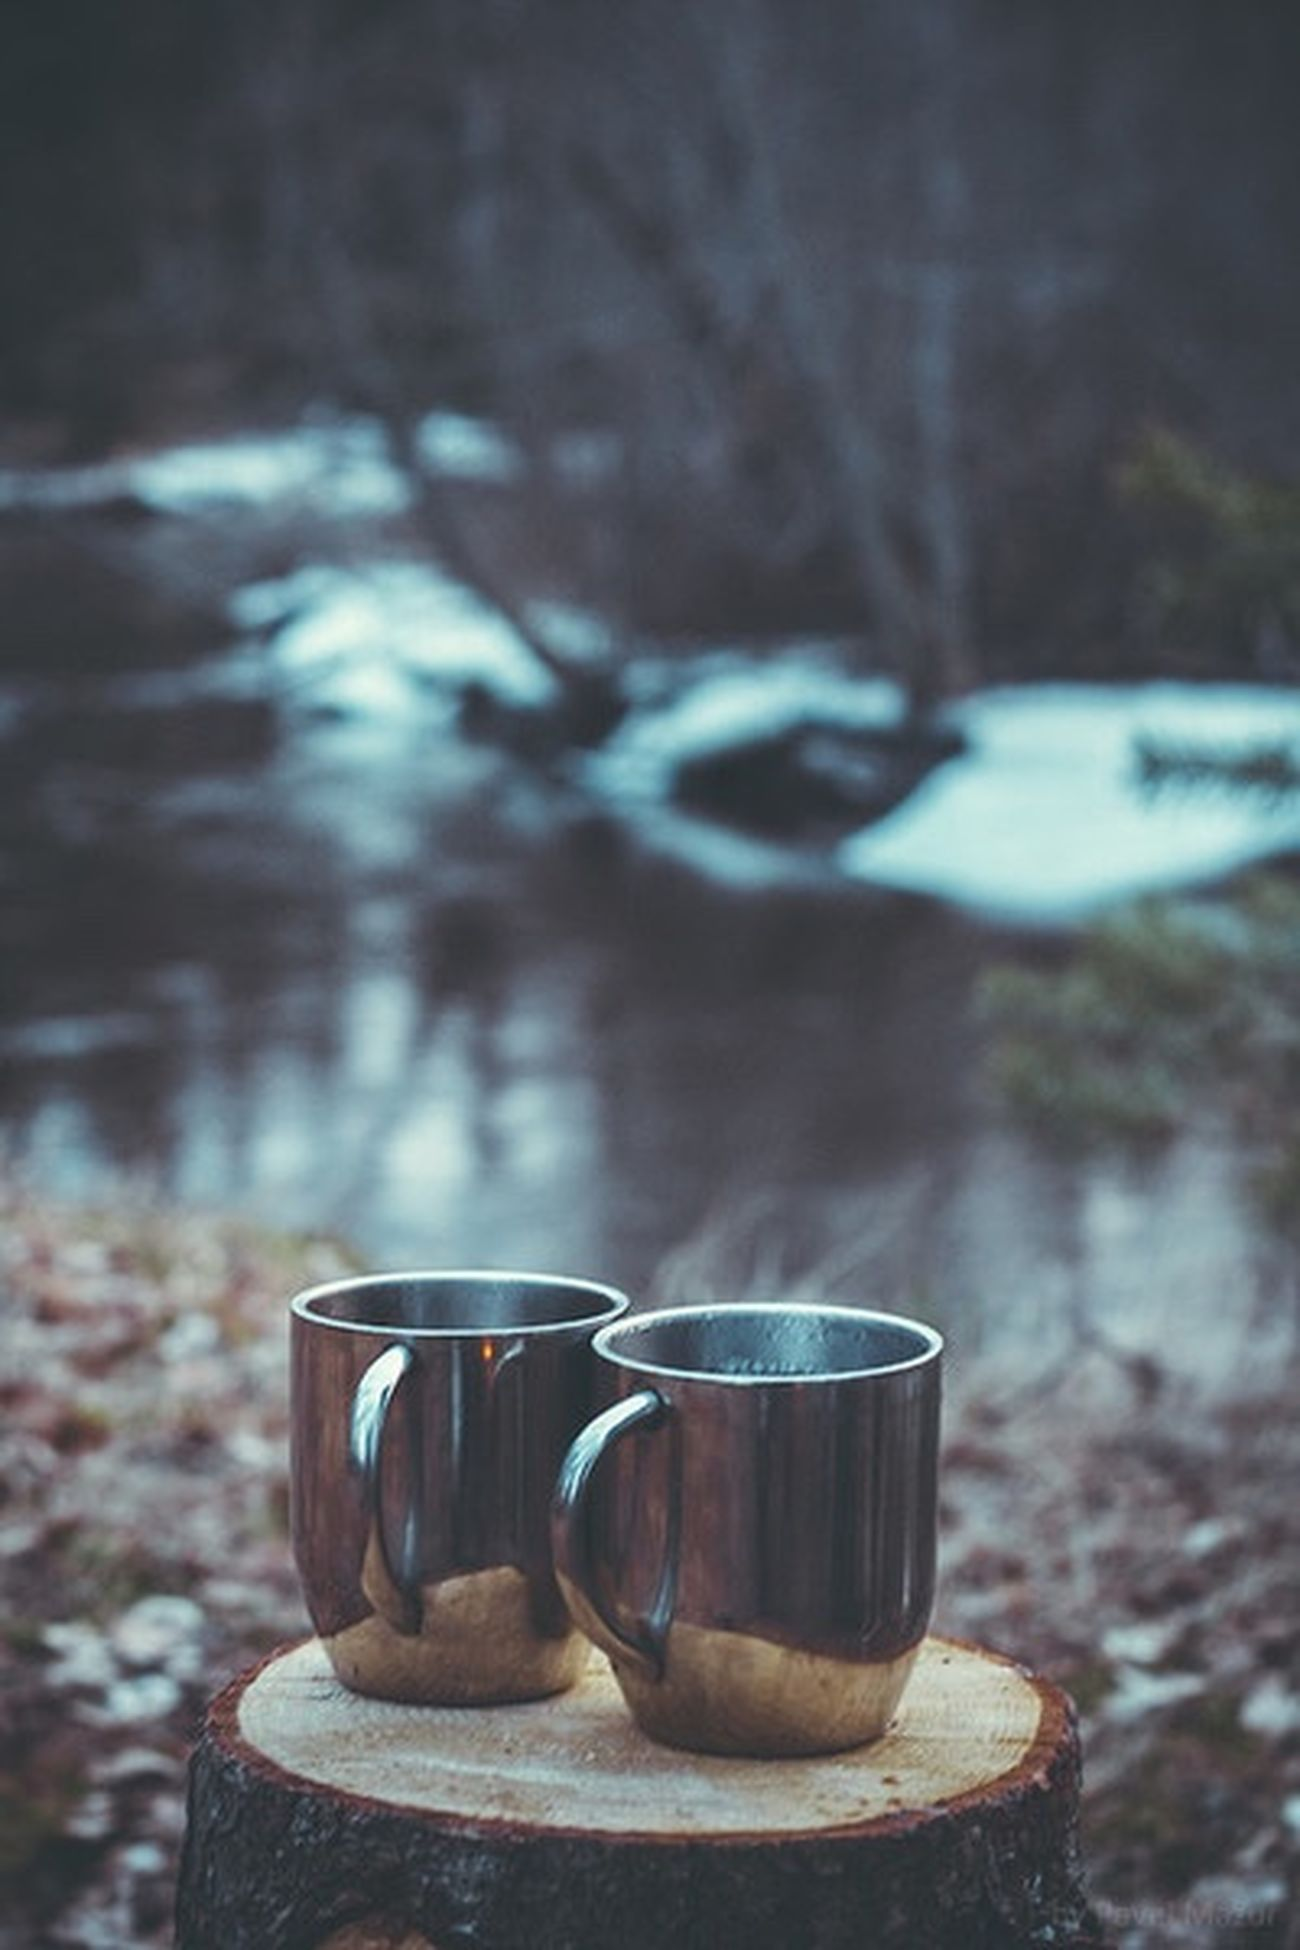 Hotchocolate Winter December Nature Twocups Hipster Indie Boho Grunge